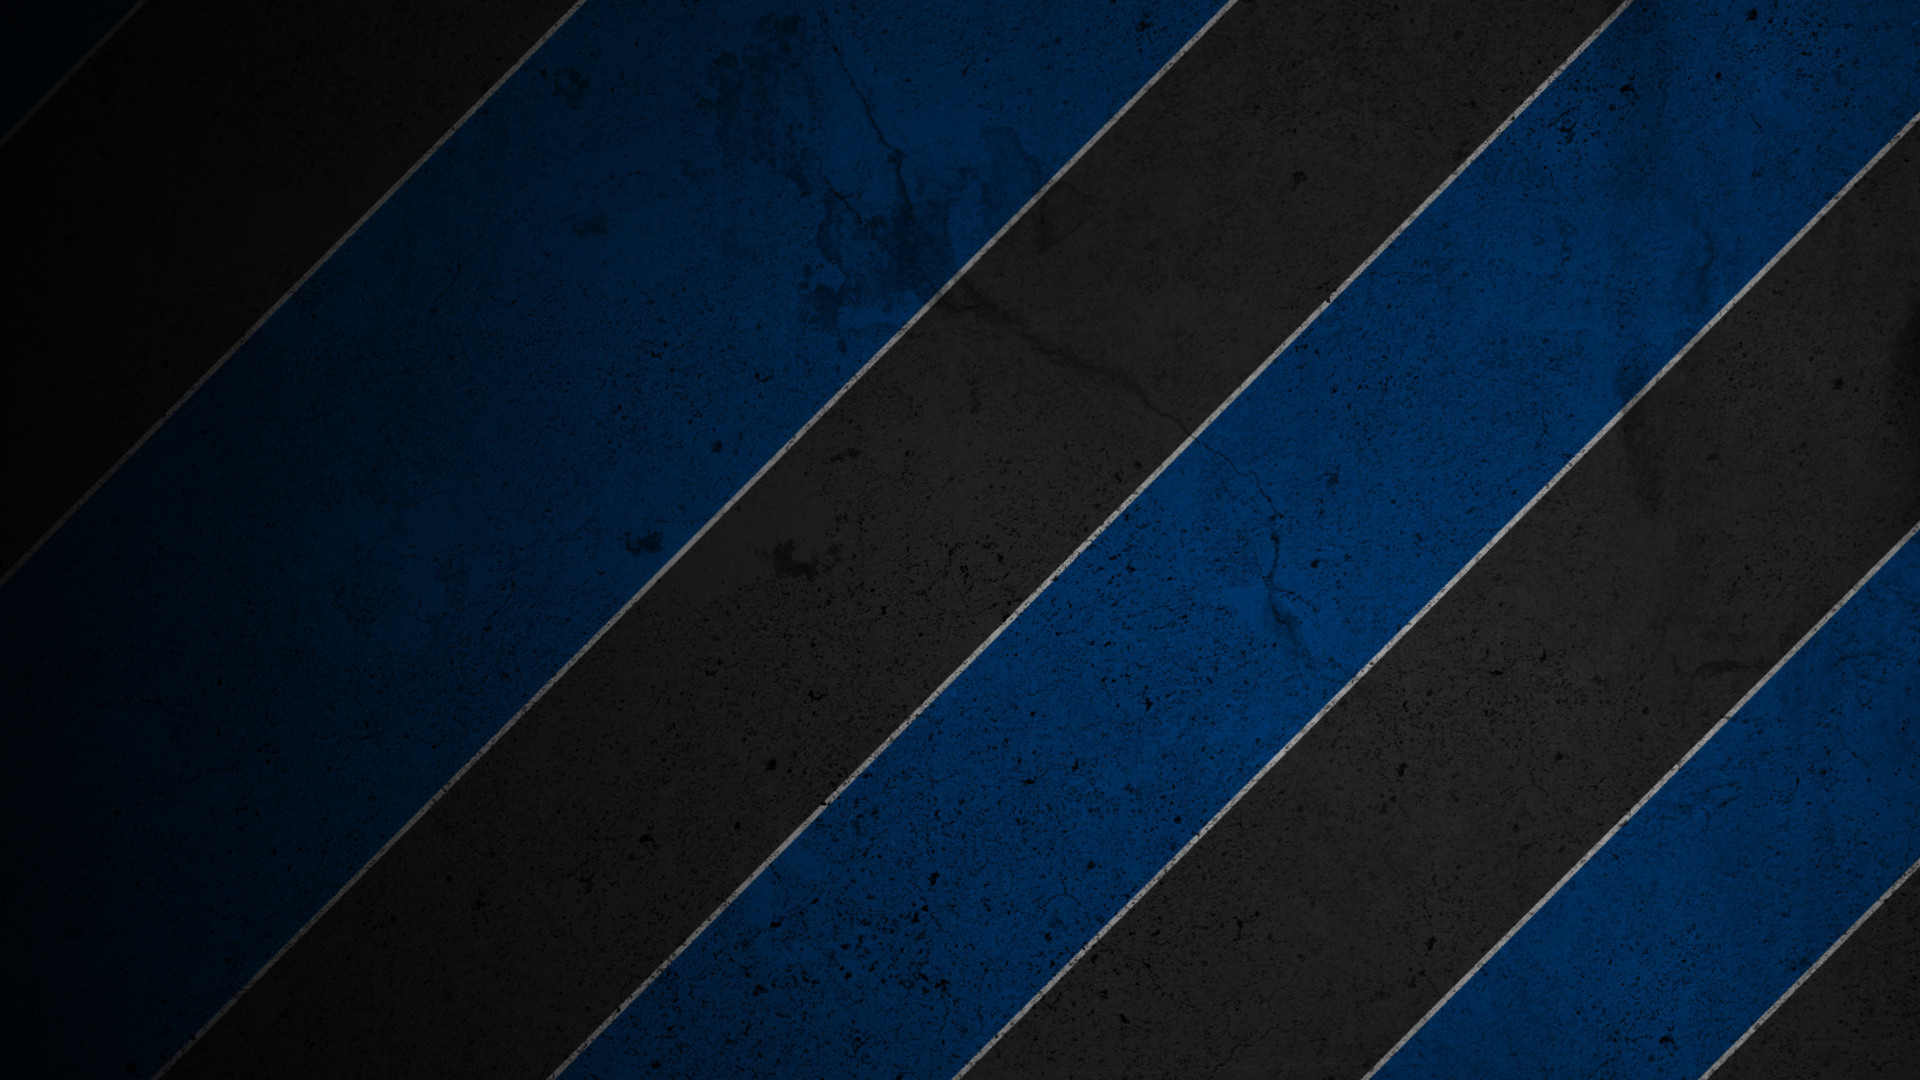 1920x1080 blue and grey wallpaper by se8015 customization wallpaper hdtv